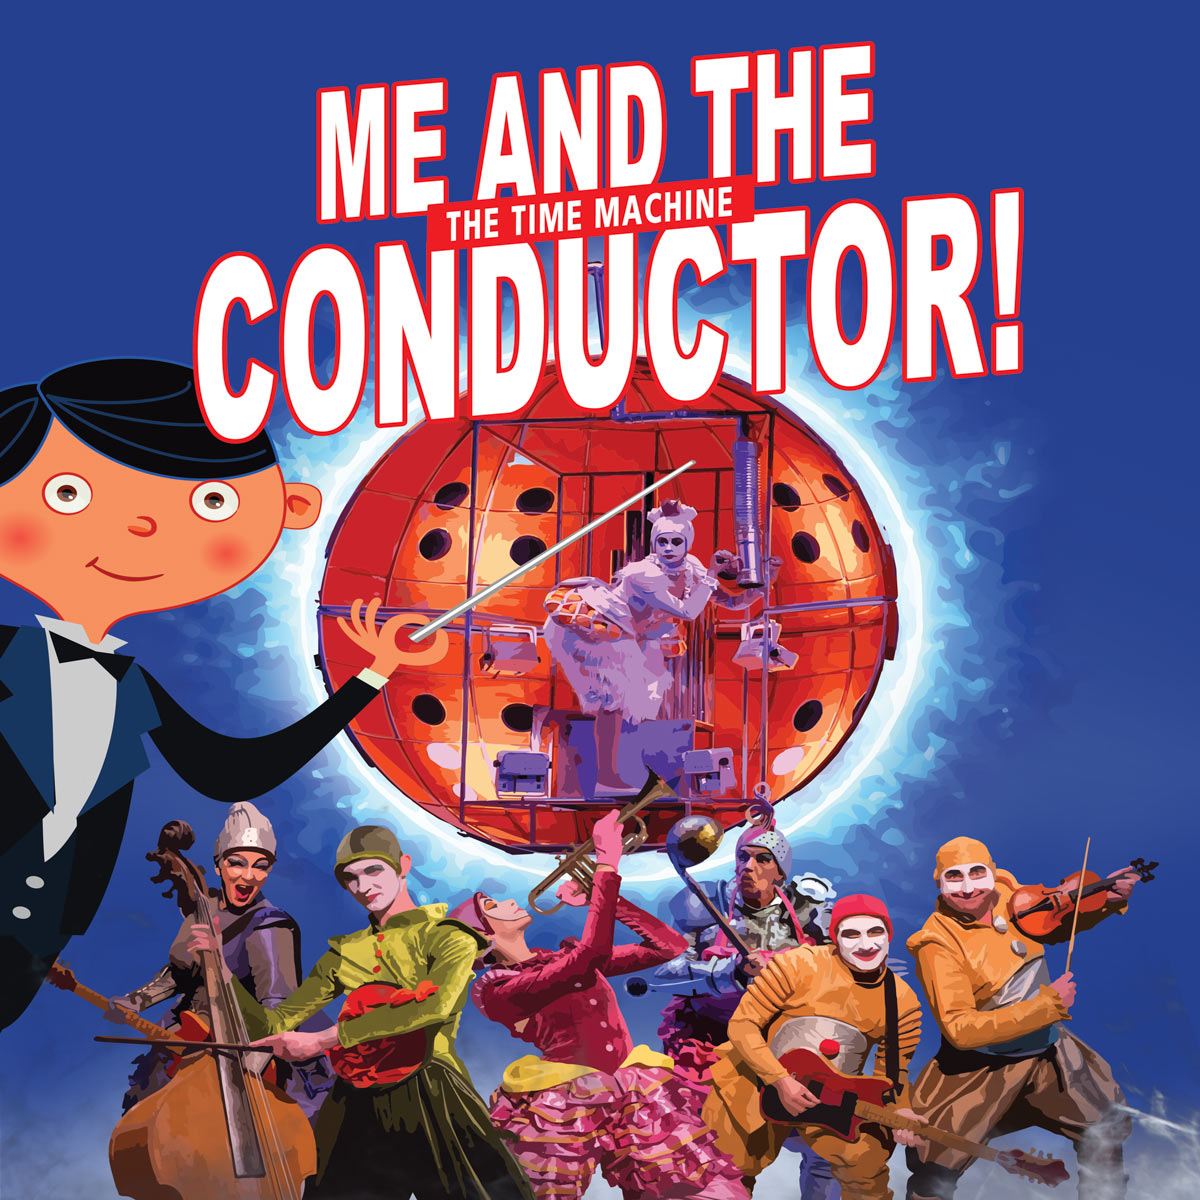 Me and the conductor, the time machine!